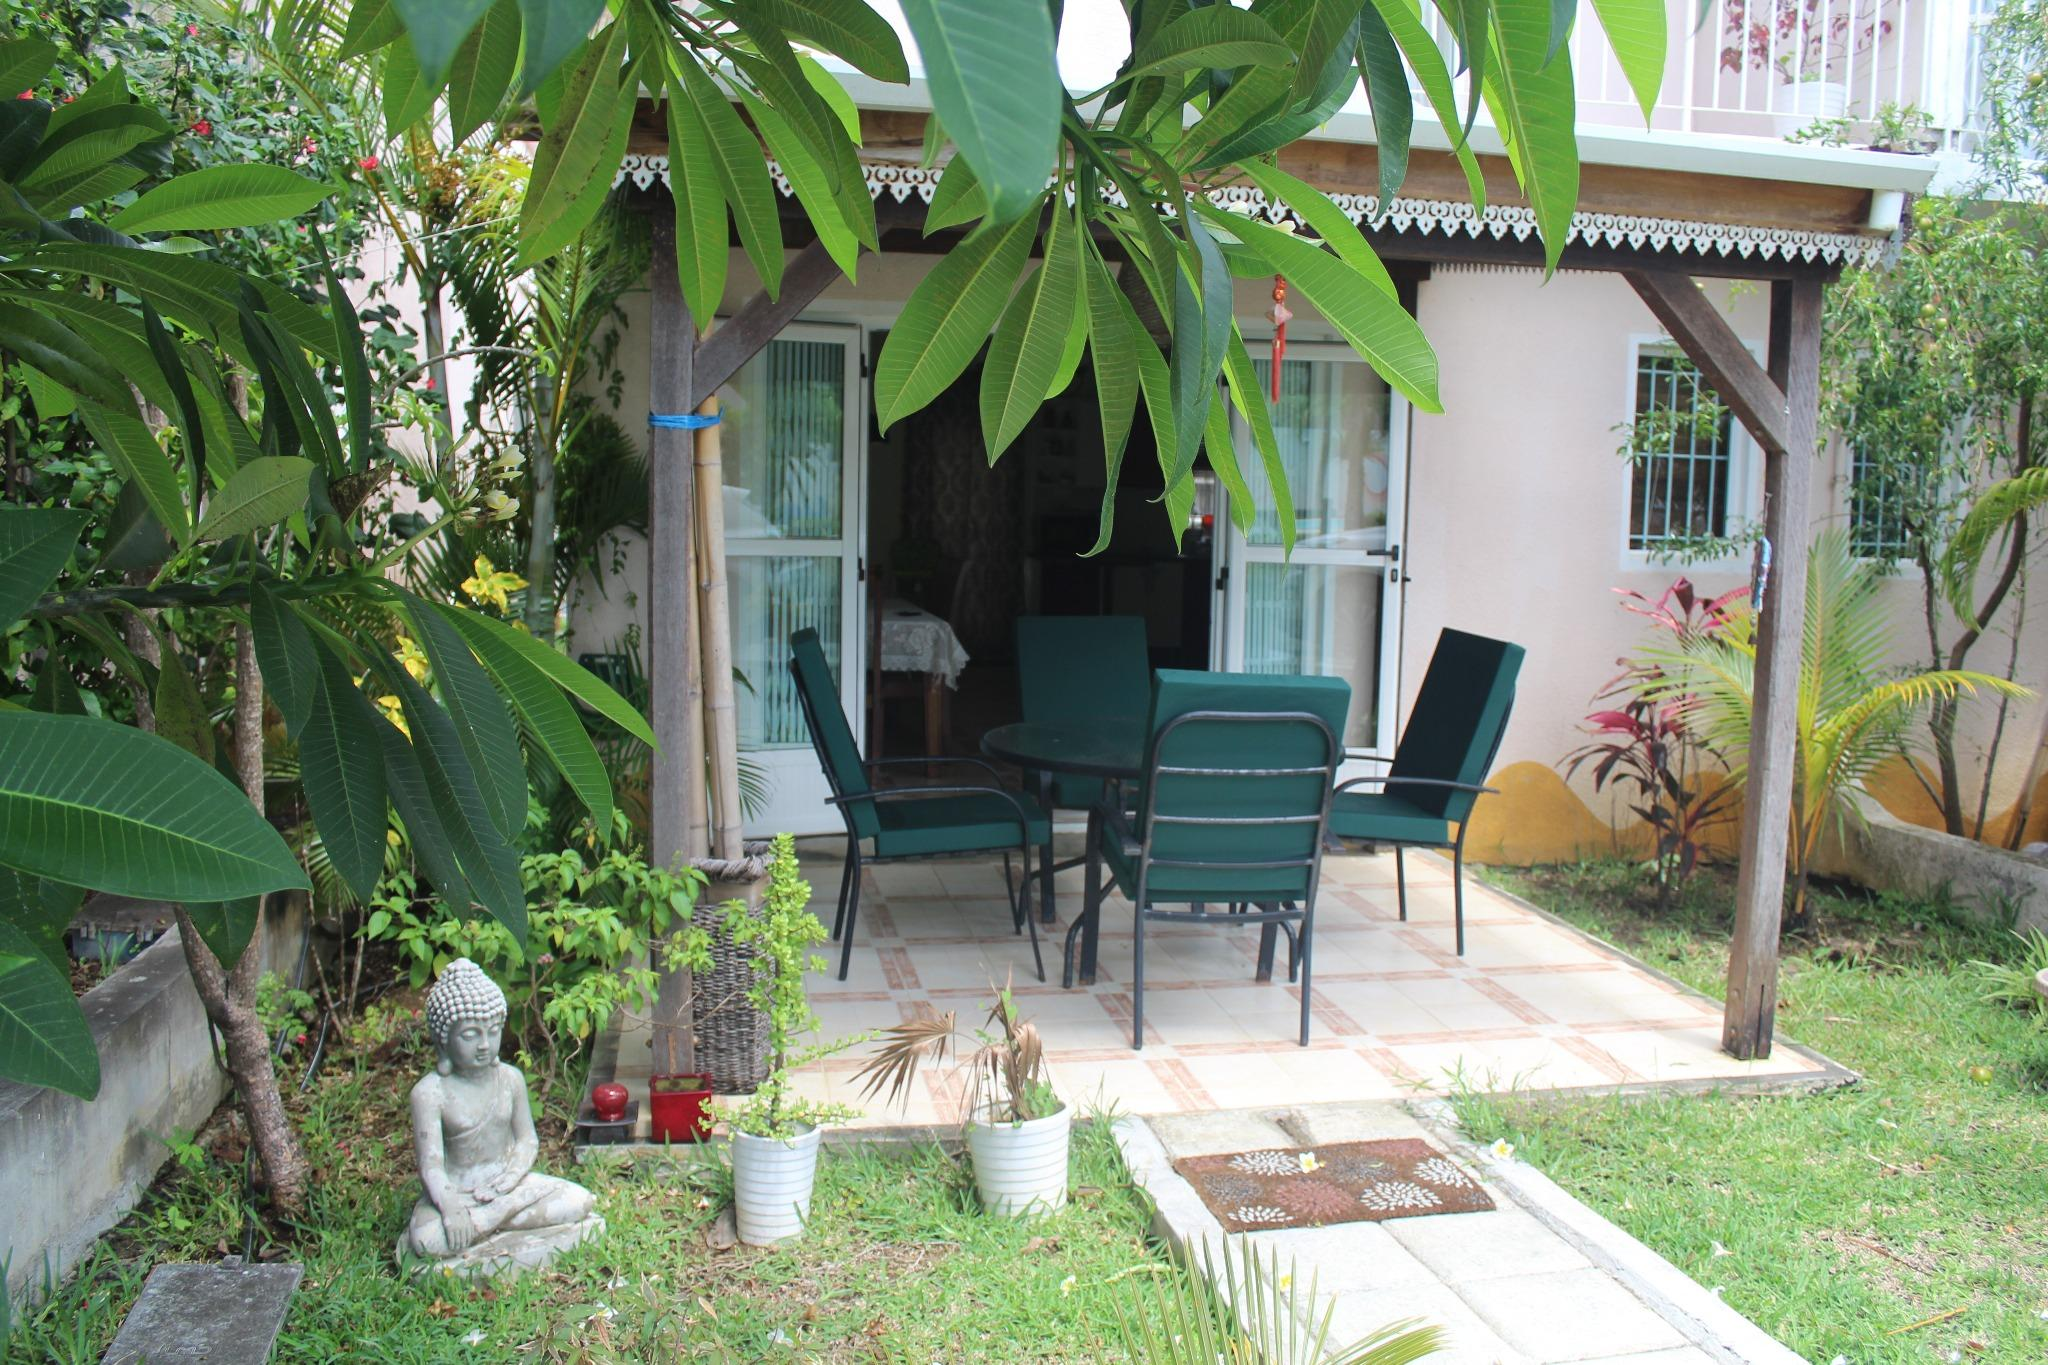 FOR SALE – Nice furnished and equipped duplex of 82 m2 Les Barachois residence in Grand Gaube